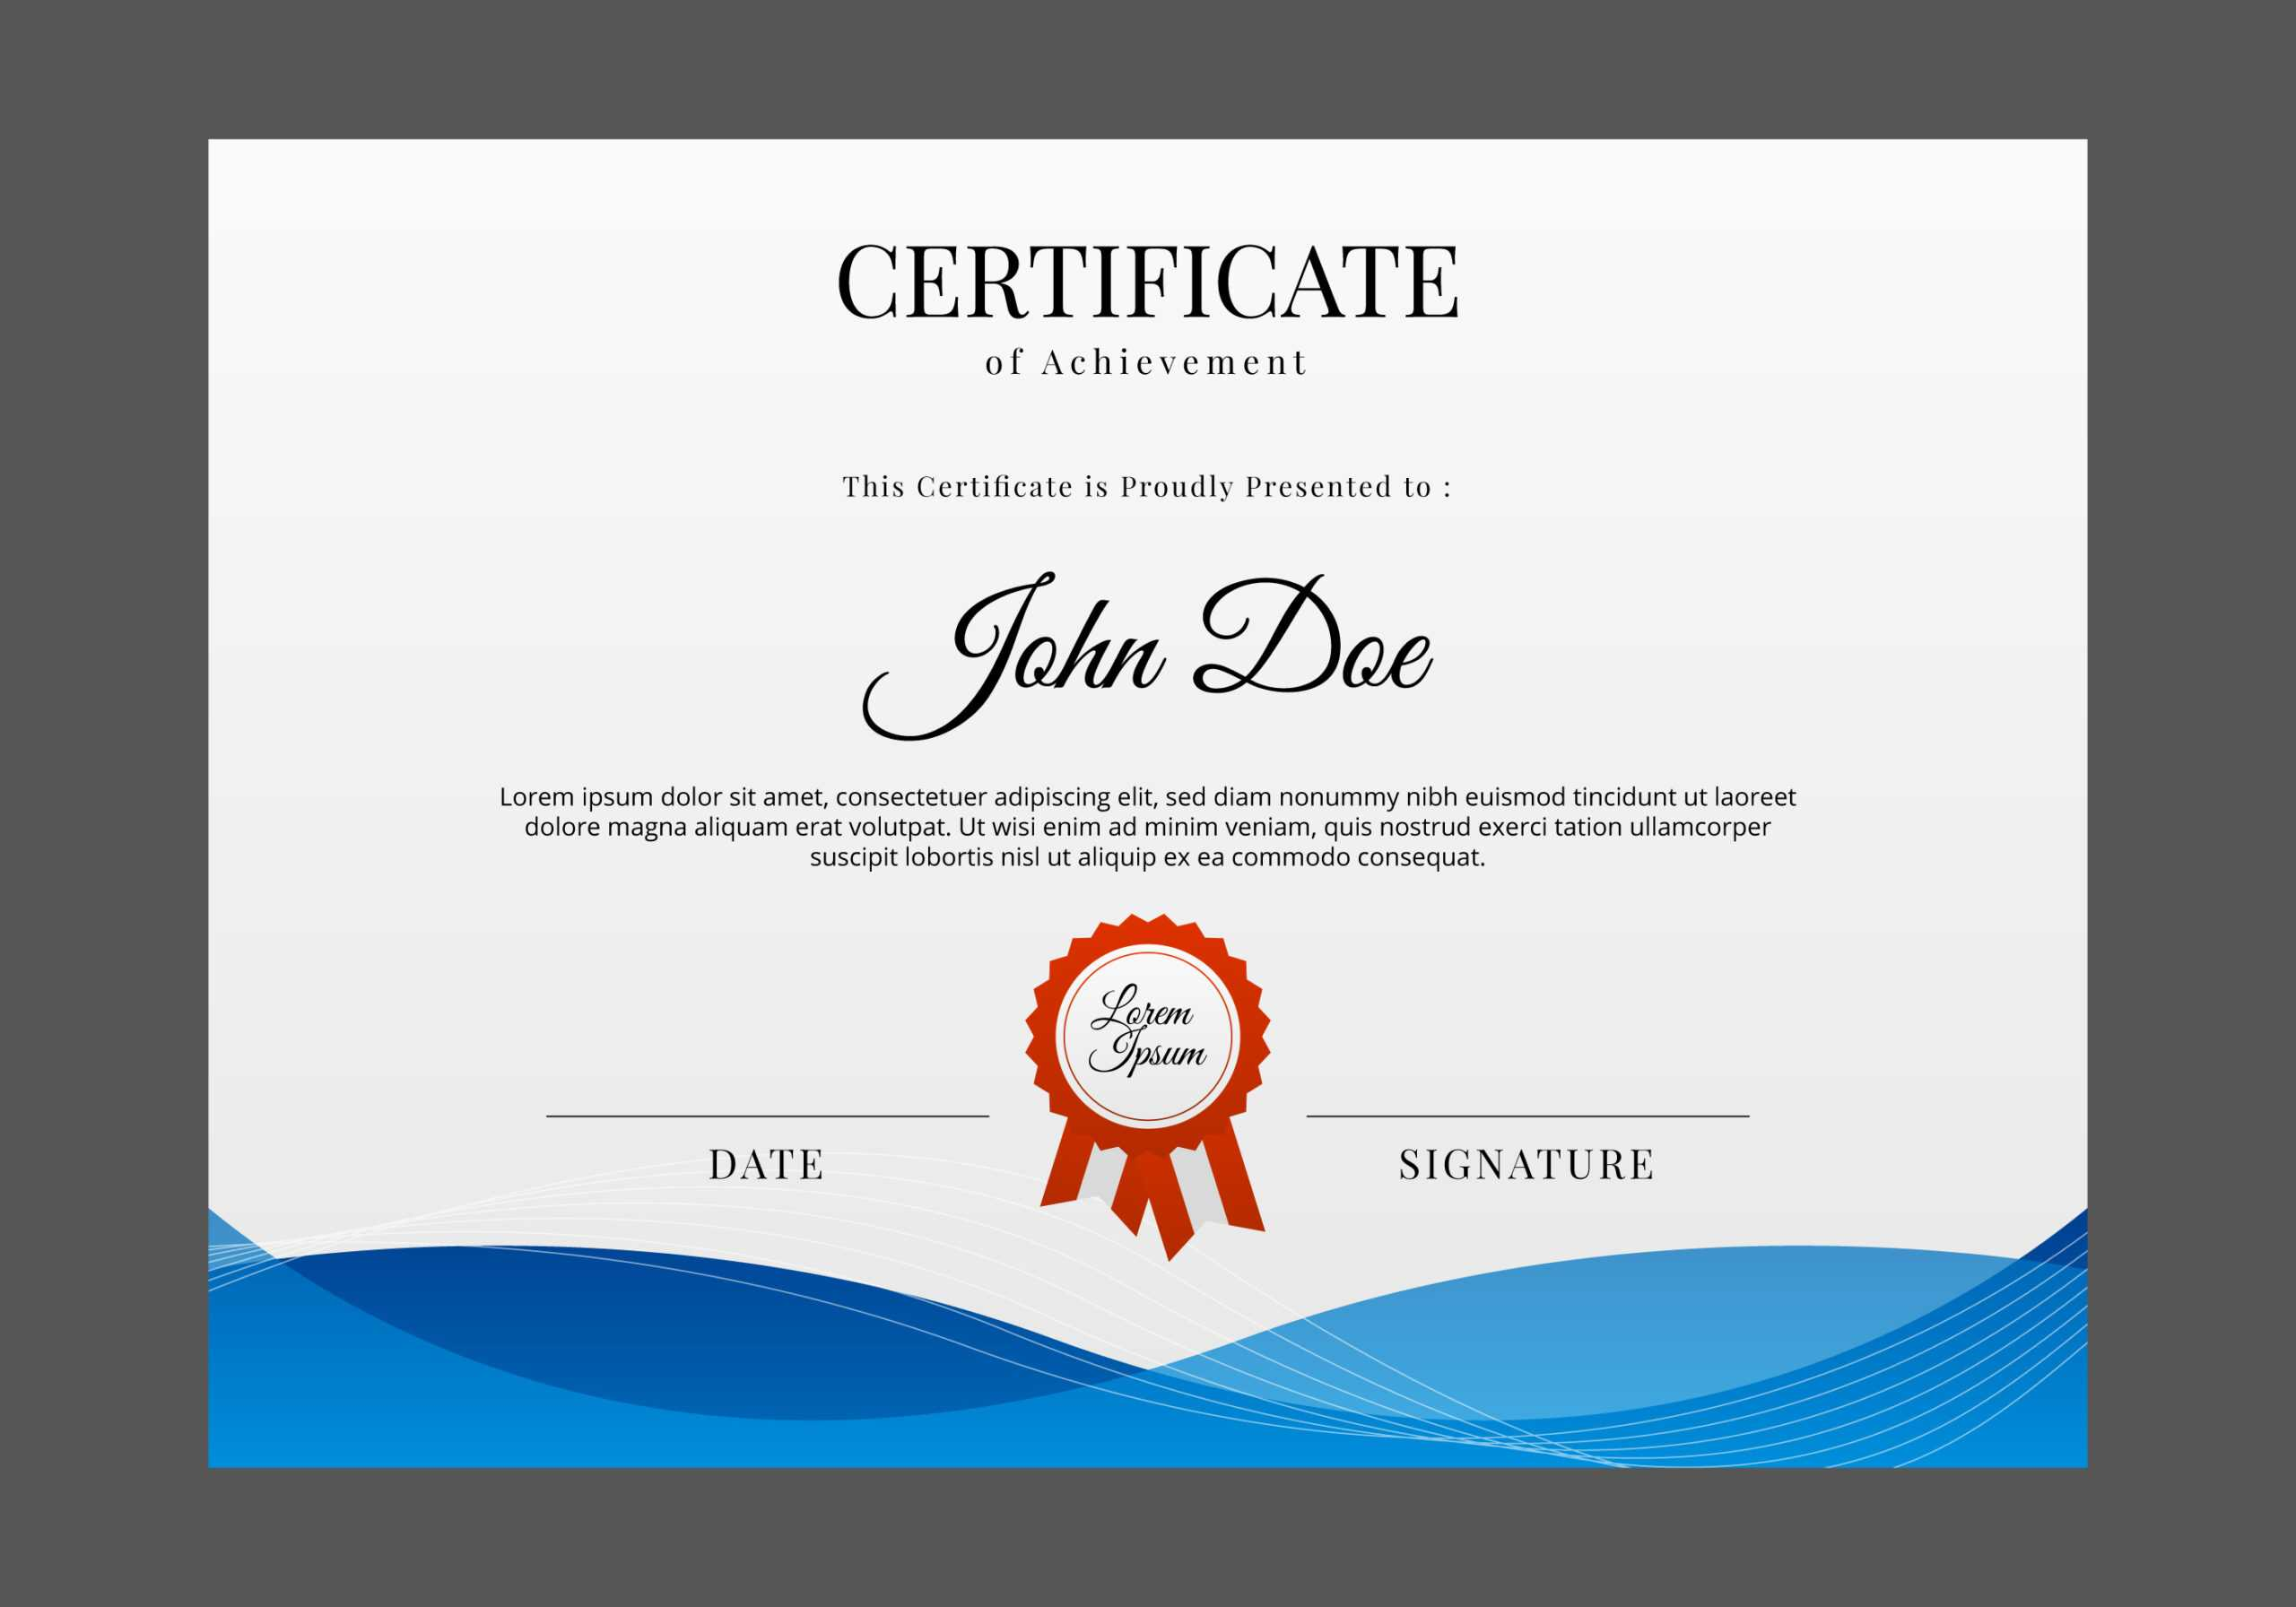 Certificate Templates, Free Certificate Designs Pertaining To Professional Certificate Templates For Word